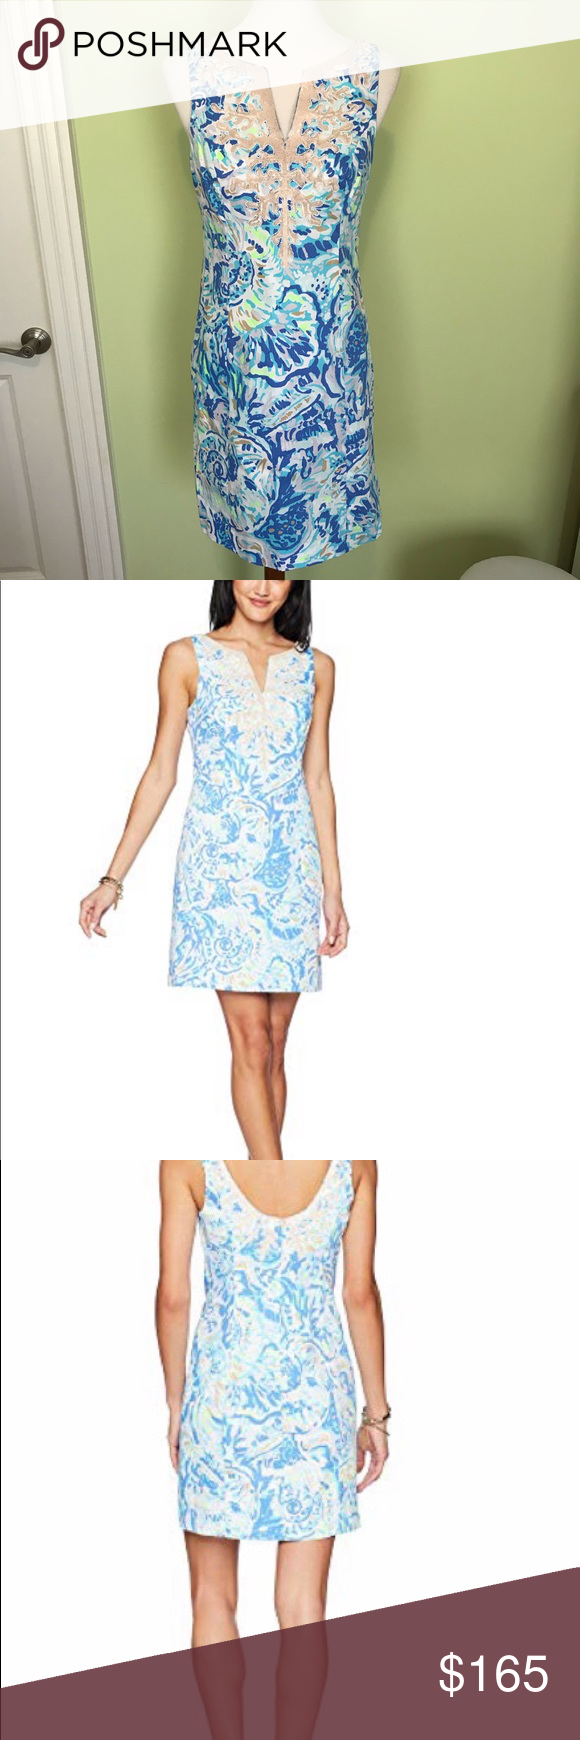 ec7f9c0c51d50c Lilly Pulitzer NWT 💕dress sz 4 Brand new with tags Lilly Pulitzer Gabby  Shift in Bennet Blue salty Sea..showstopper.. zipper..low back.. nude color  ...